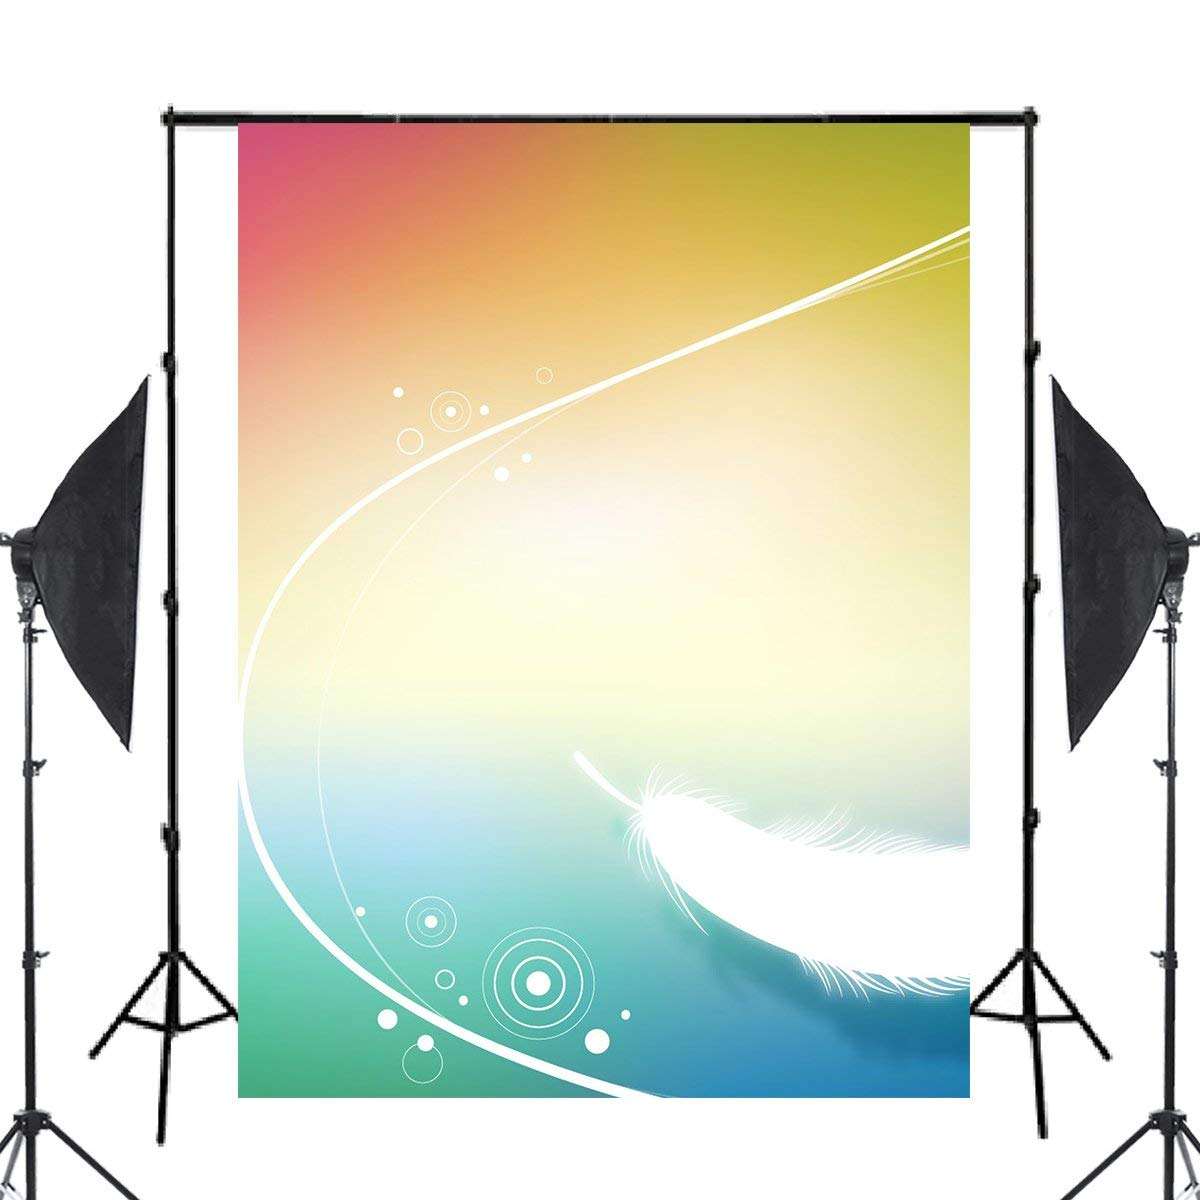 Image 2 - Exquisite Fluffy White Feather Background Photography Colorful Backdrops for Picture Kids Photo Studio Background 5x7ft-in Photo Studio Accessories from Consumer Electronics